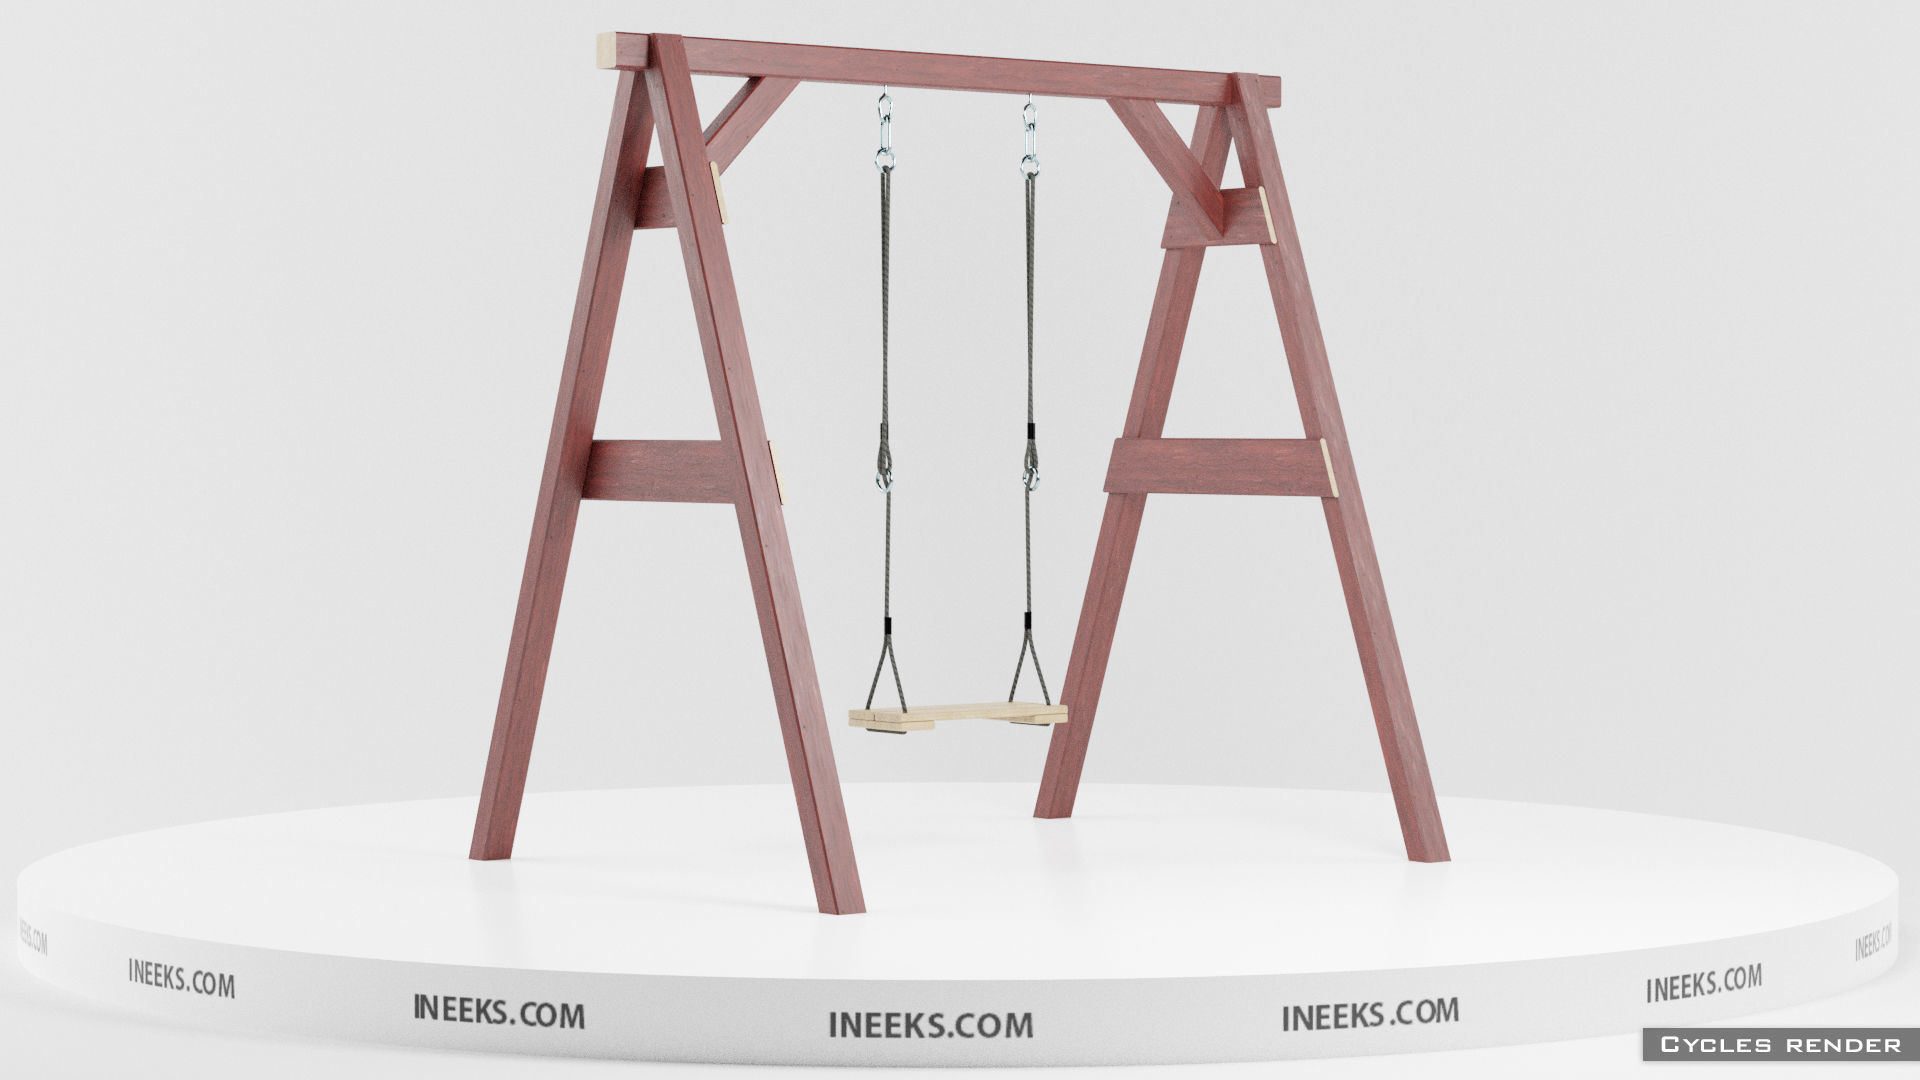 Classic wooden swing set with ropes